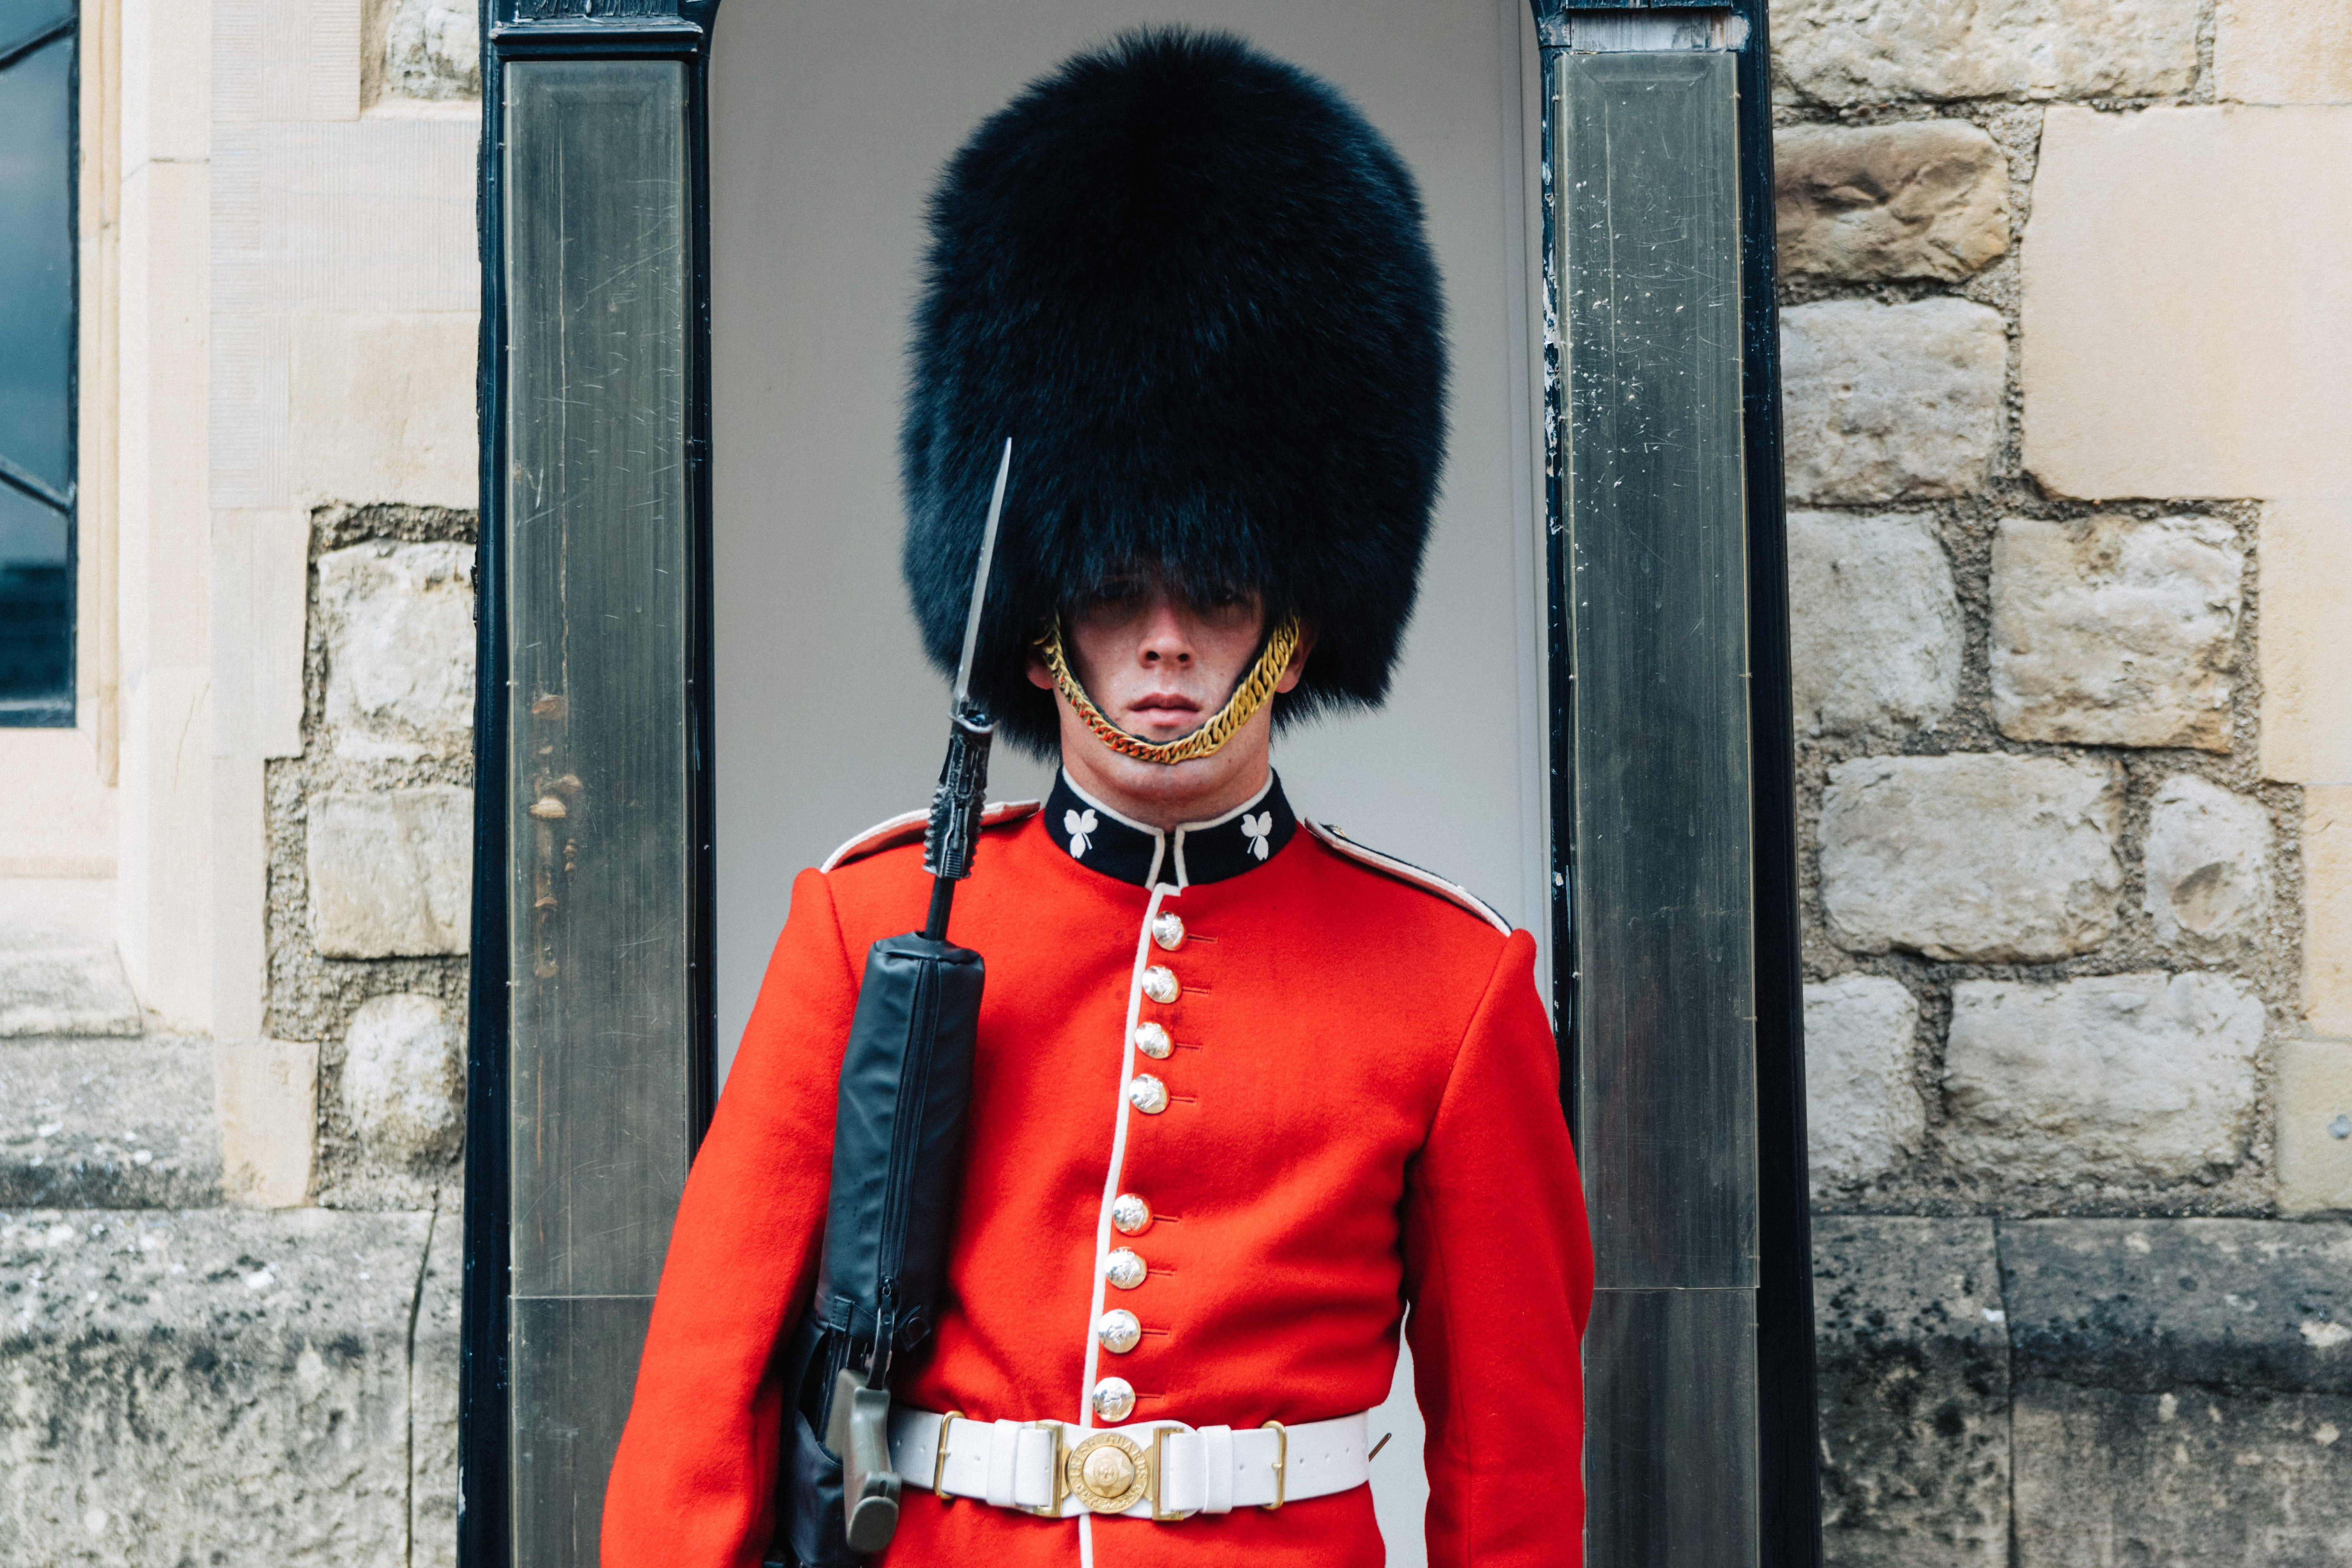 guard standing near brown wall